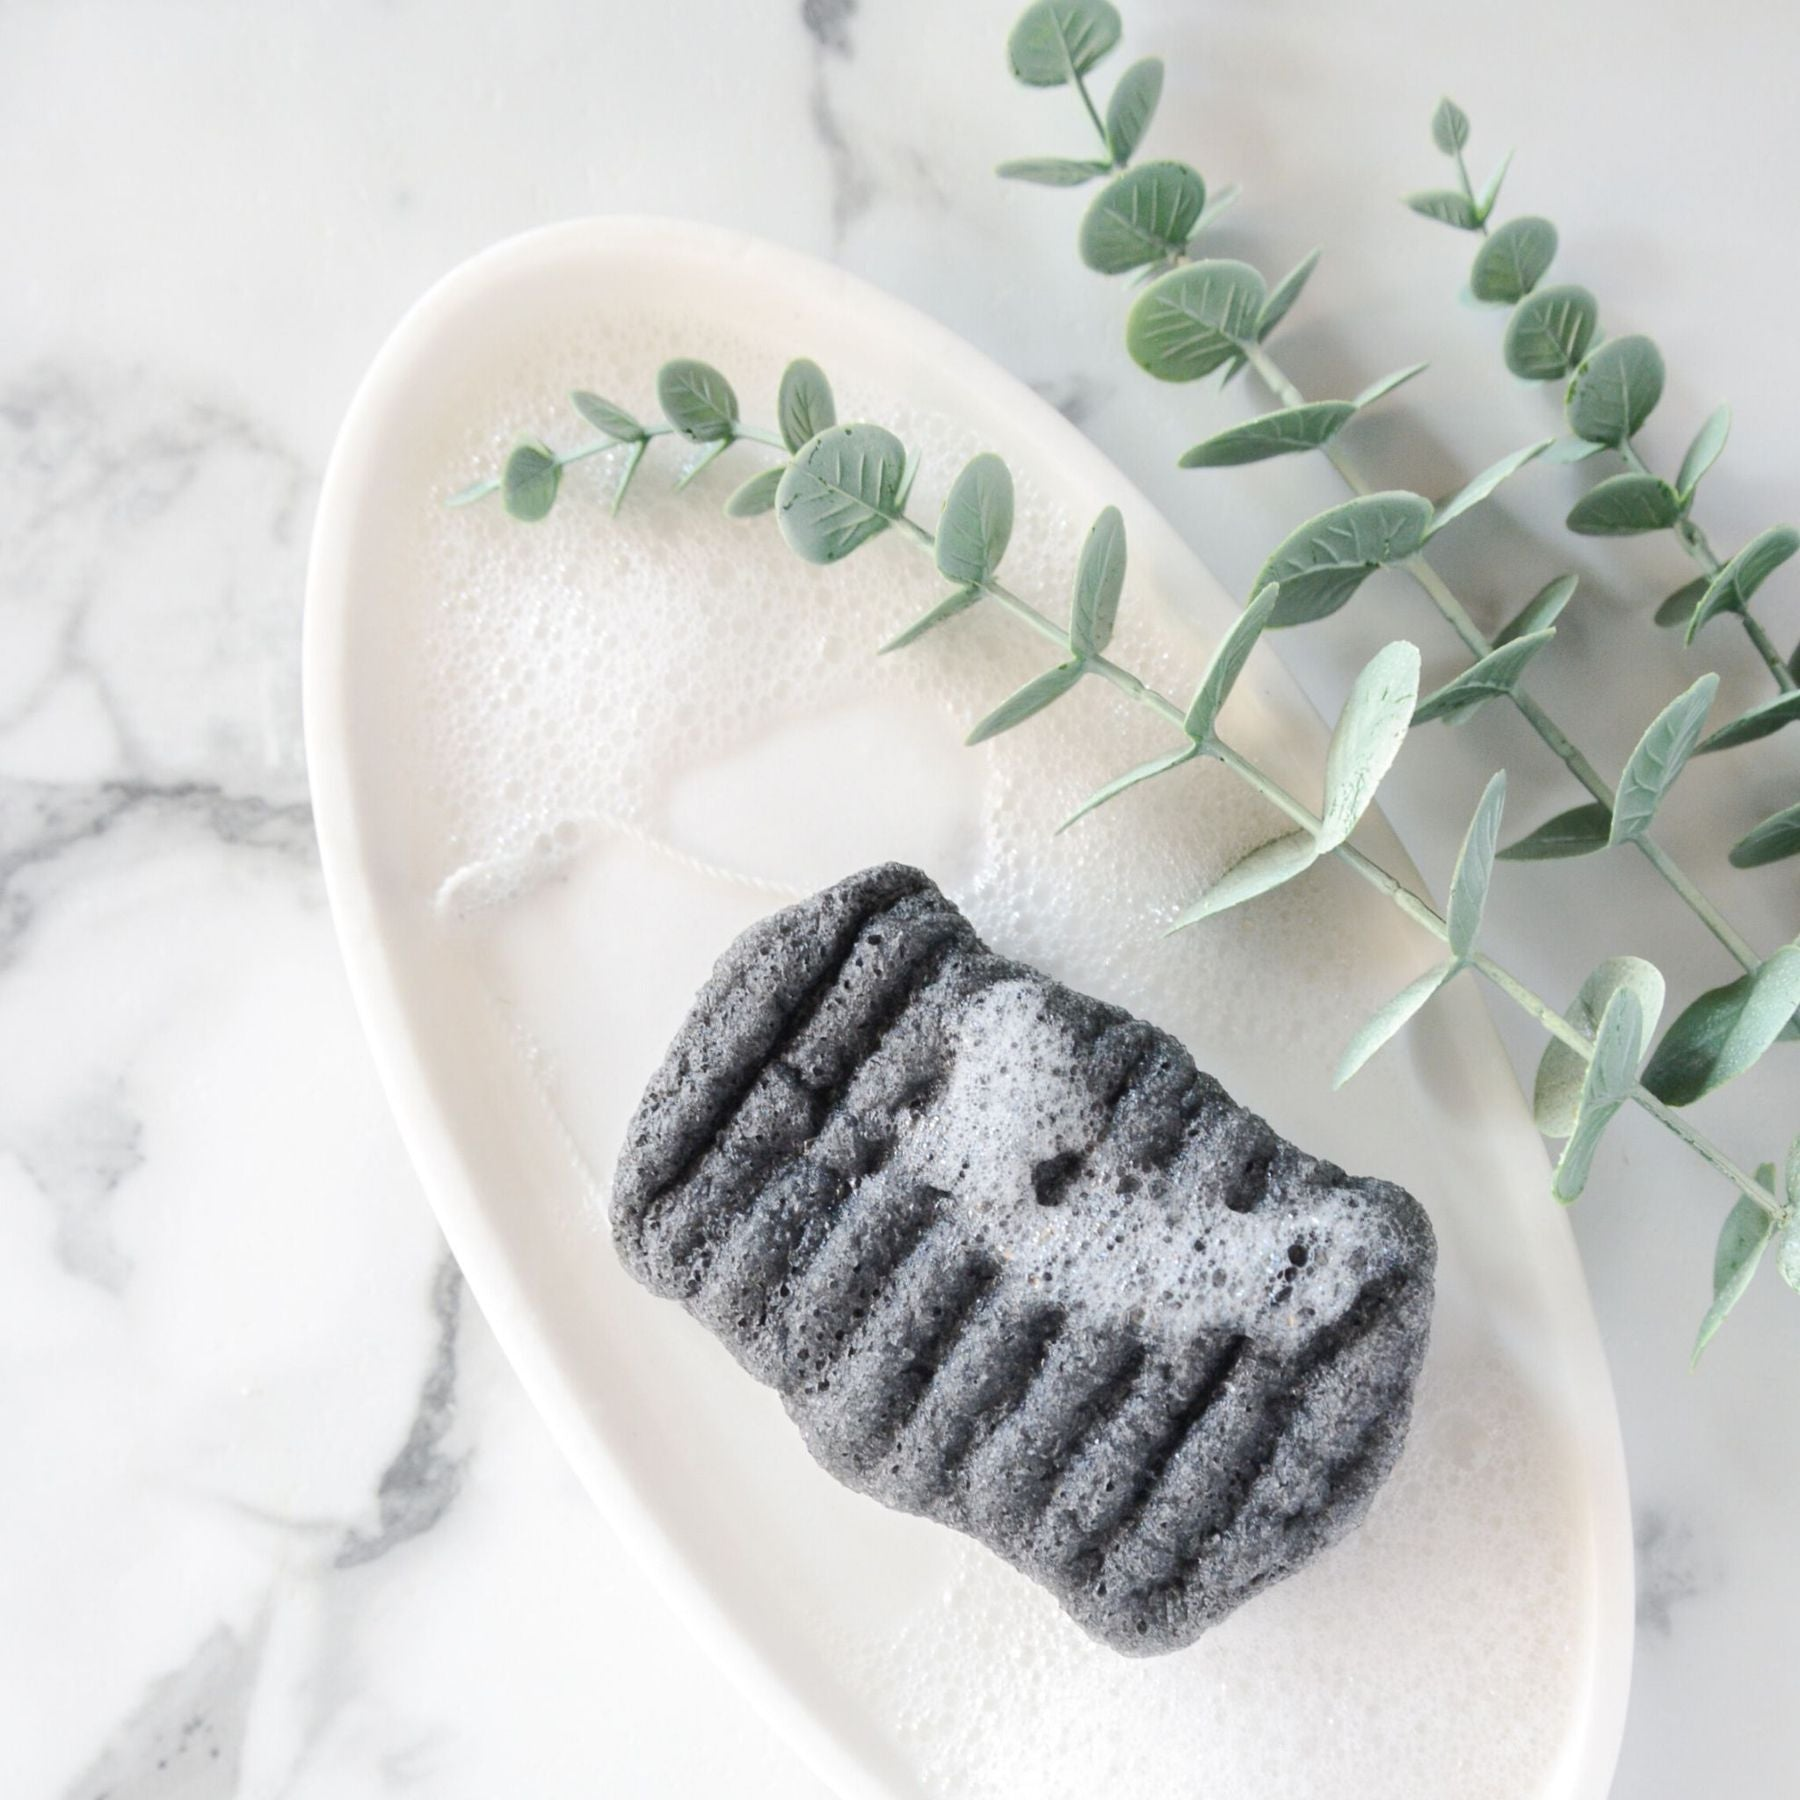 BATHORIUM - KONJAC BAMBOO CHARCOAL BODY SPONGE